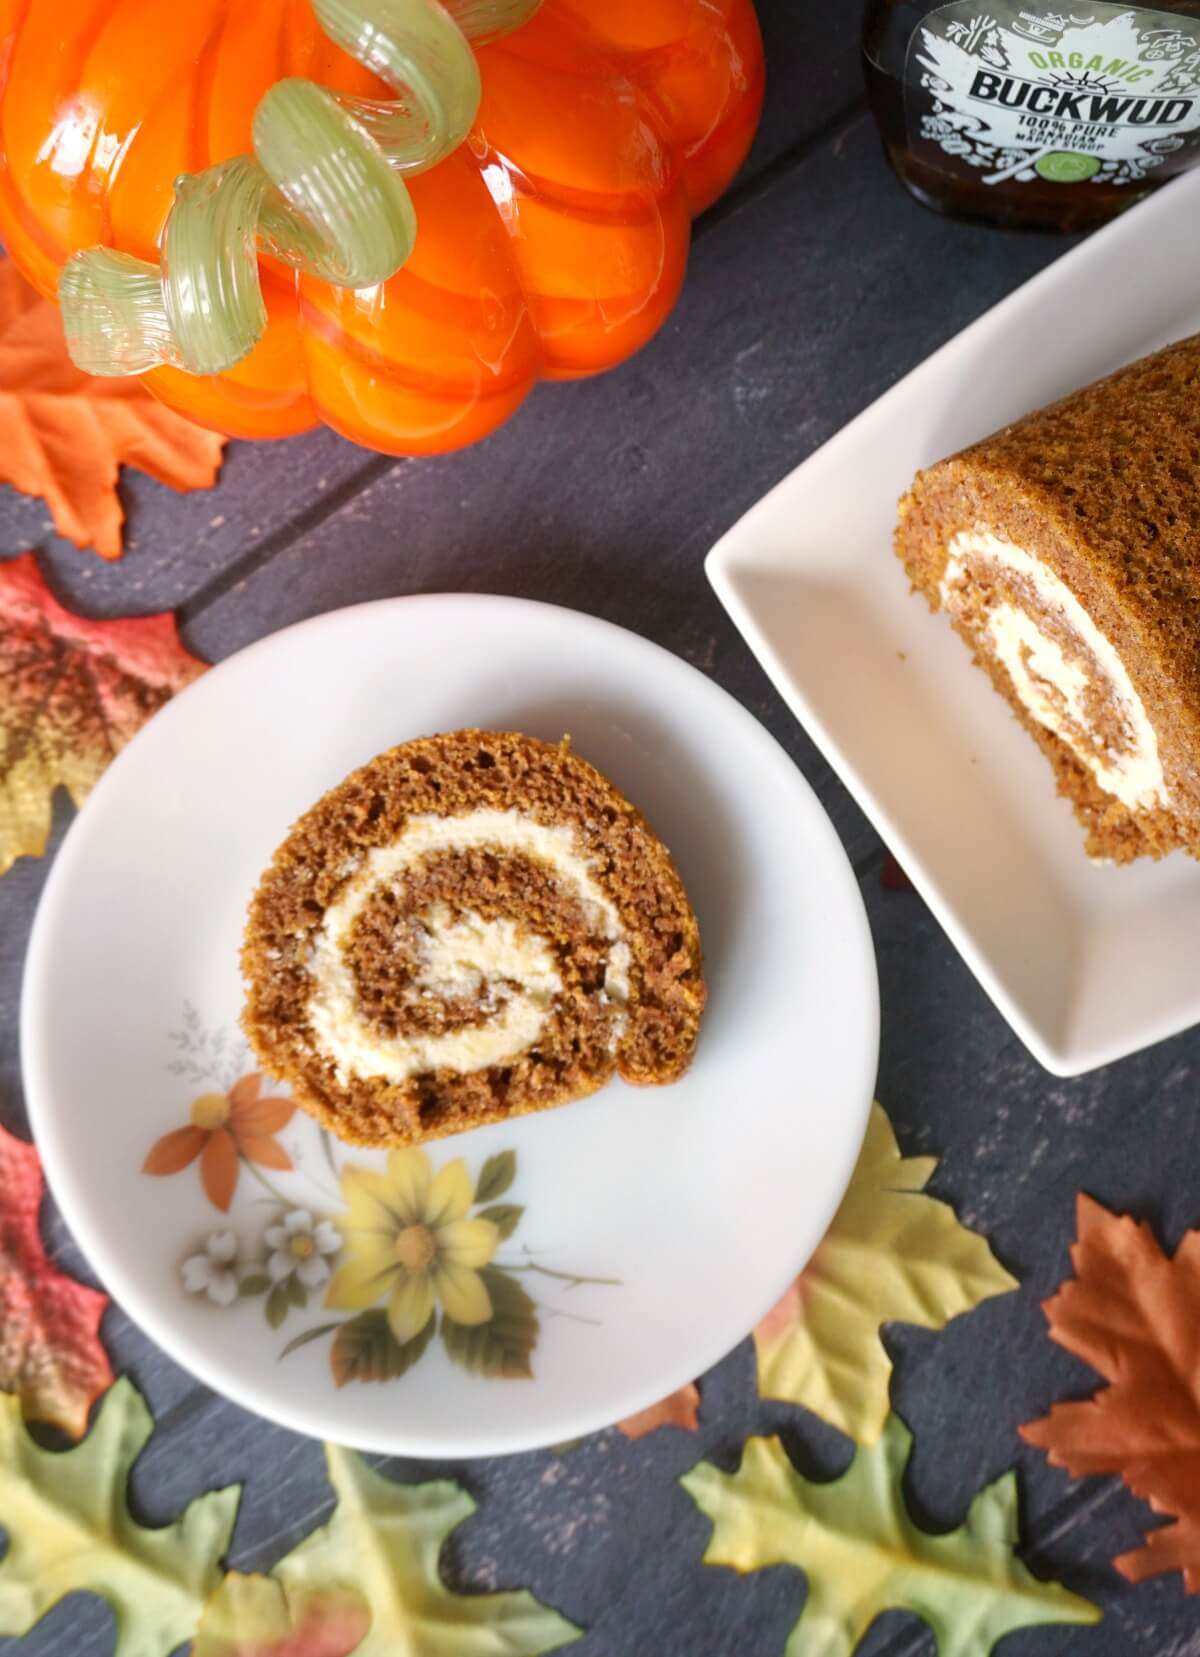 Overhead shoot of a small plate with a slice of pumpkin roll, colourful leaves, another plate with more roll and a pumpkin